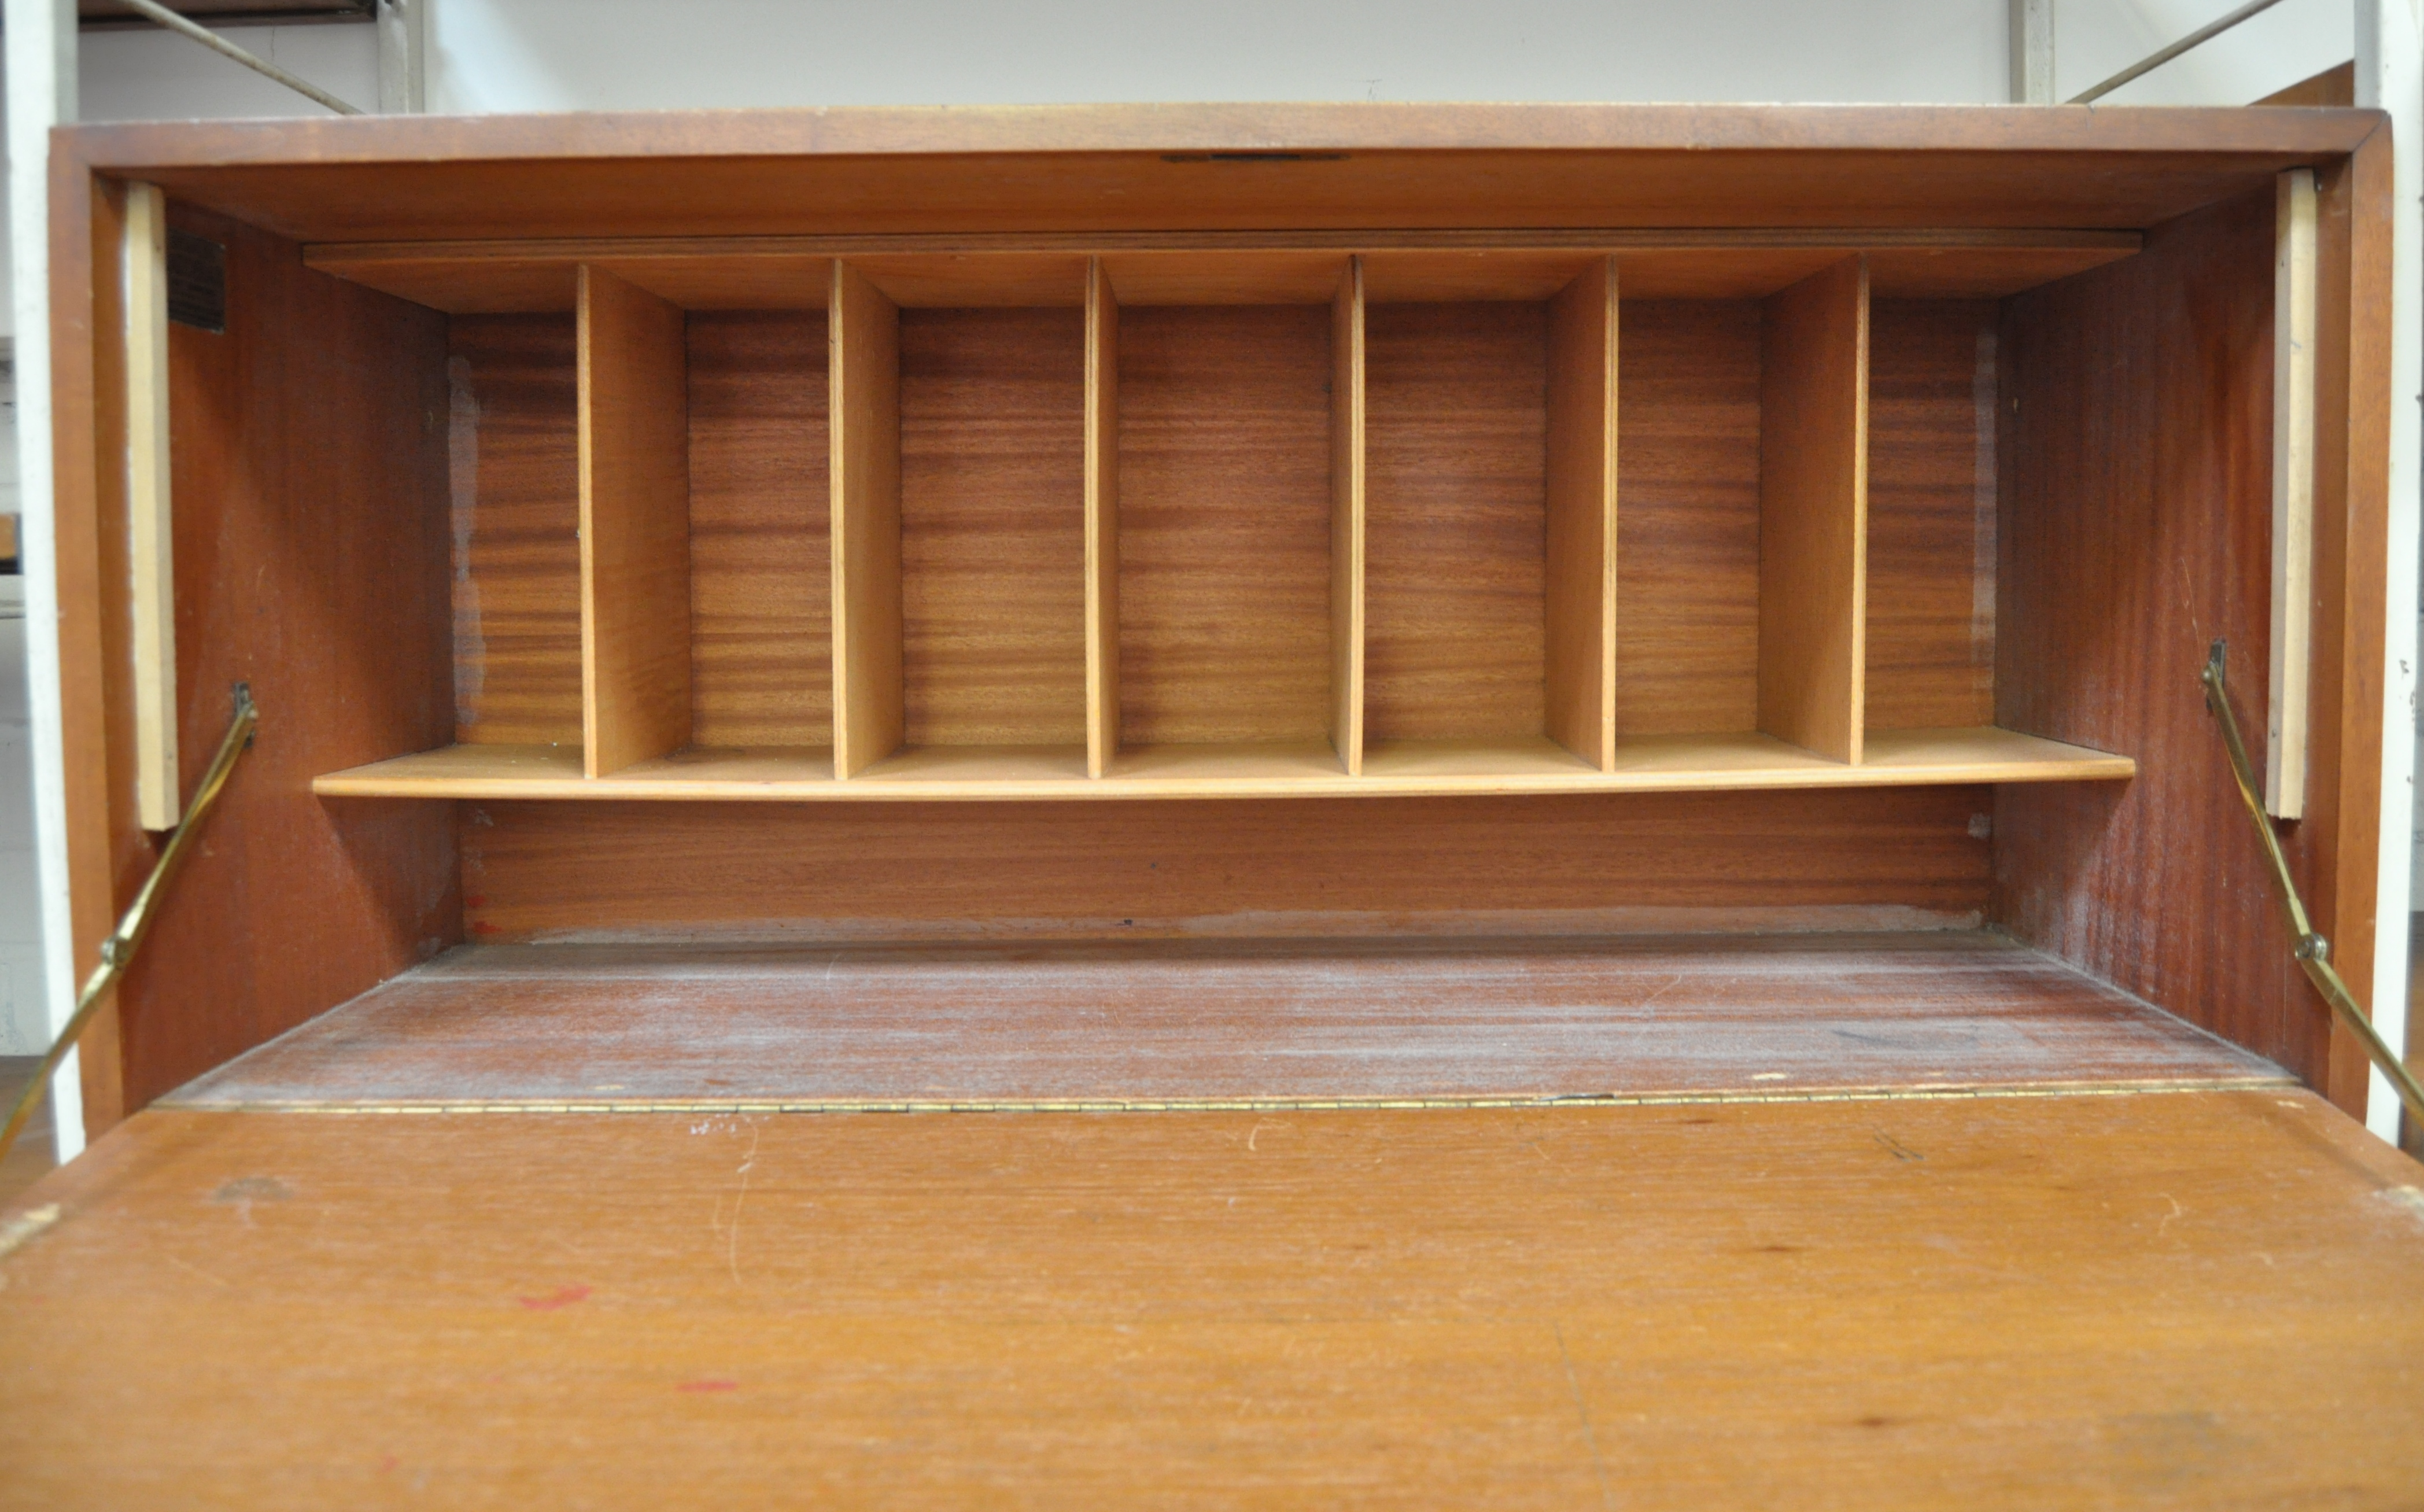 Lot 54 - RETRO VINTAGE LADDERAX SHELVING UNIT MADE BY STAPLES